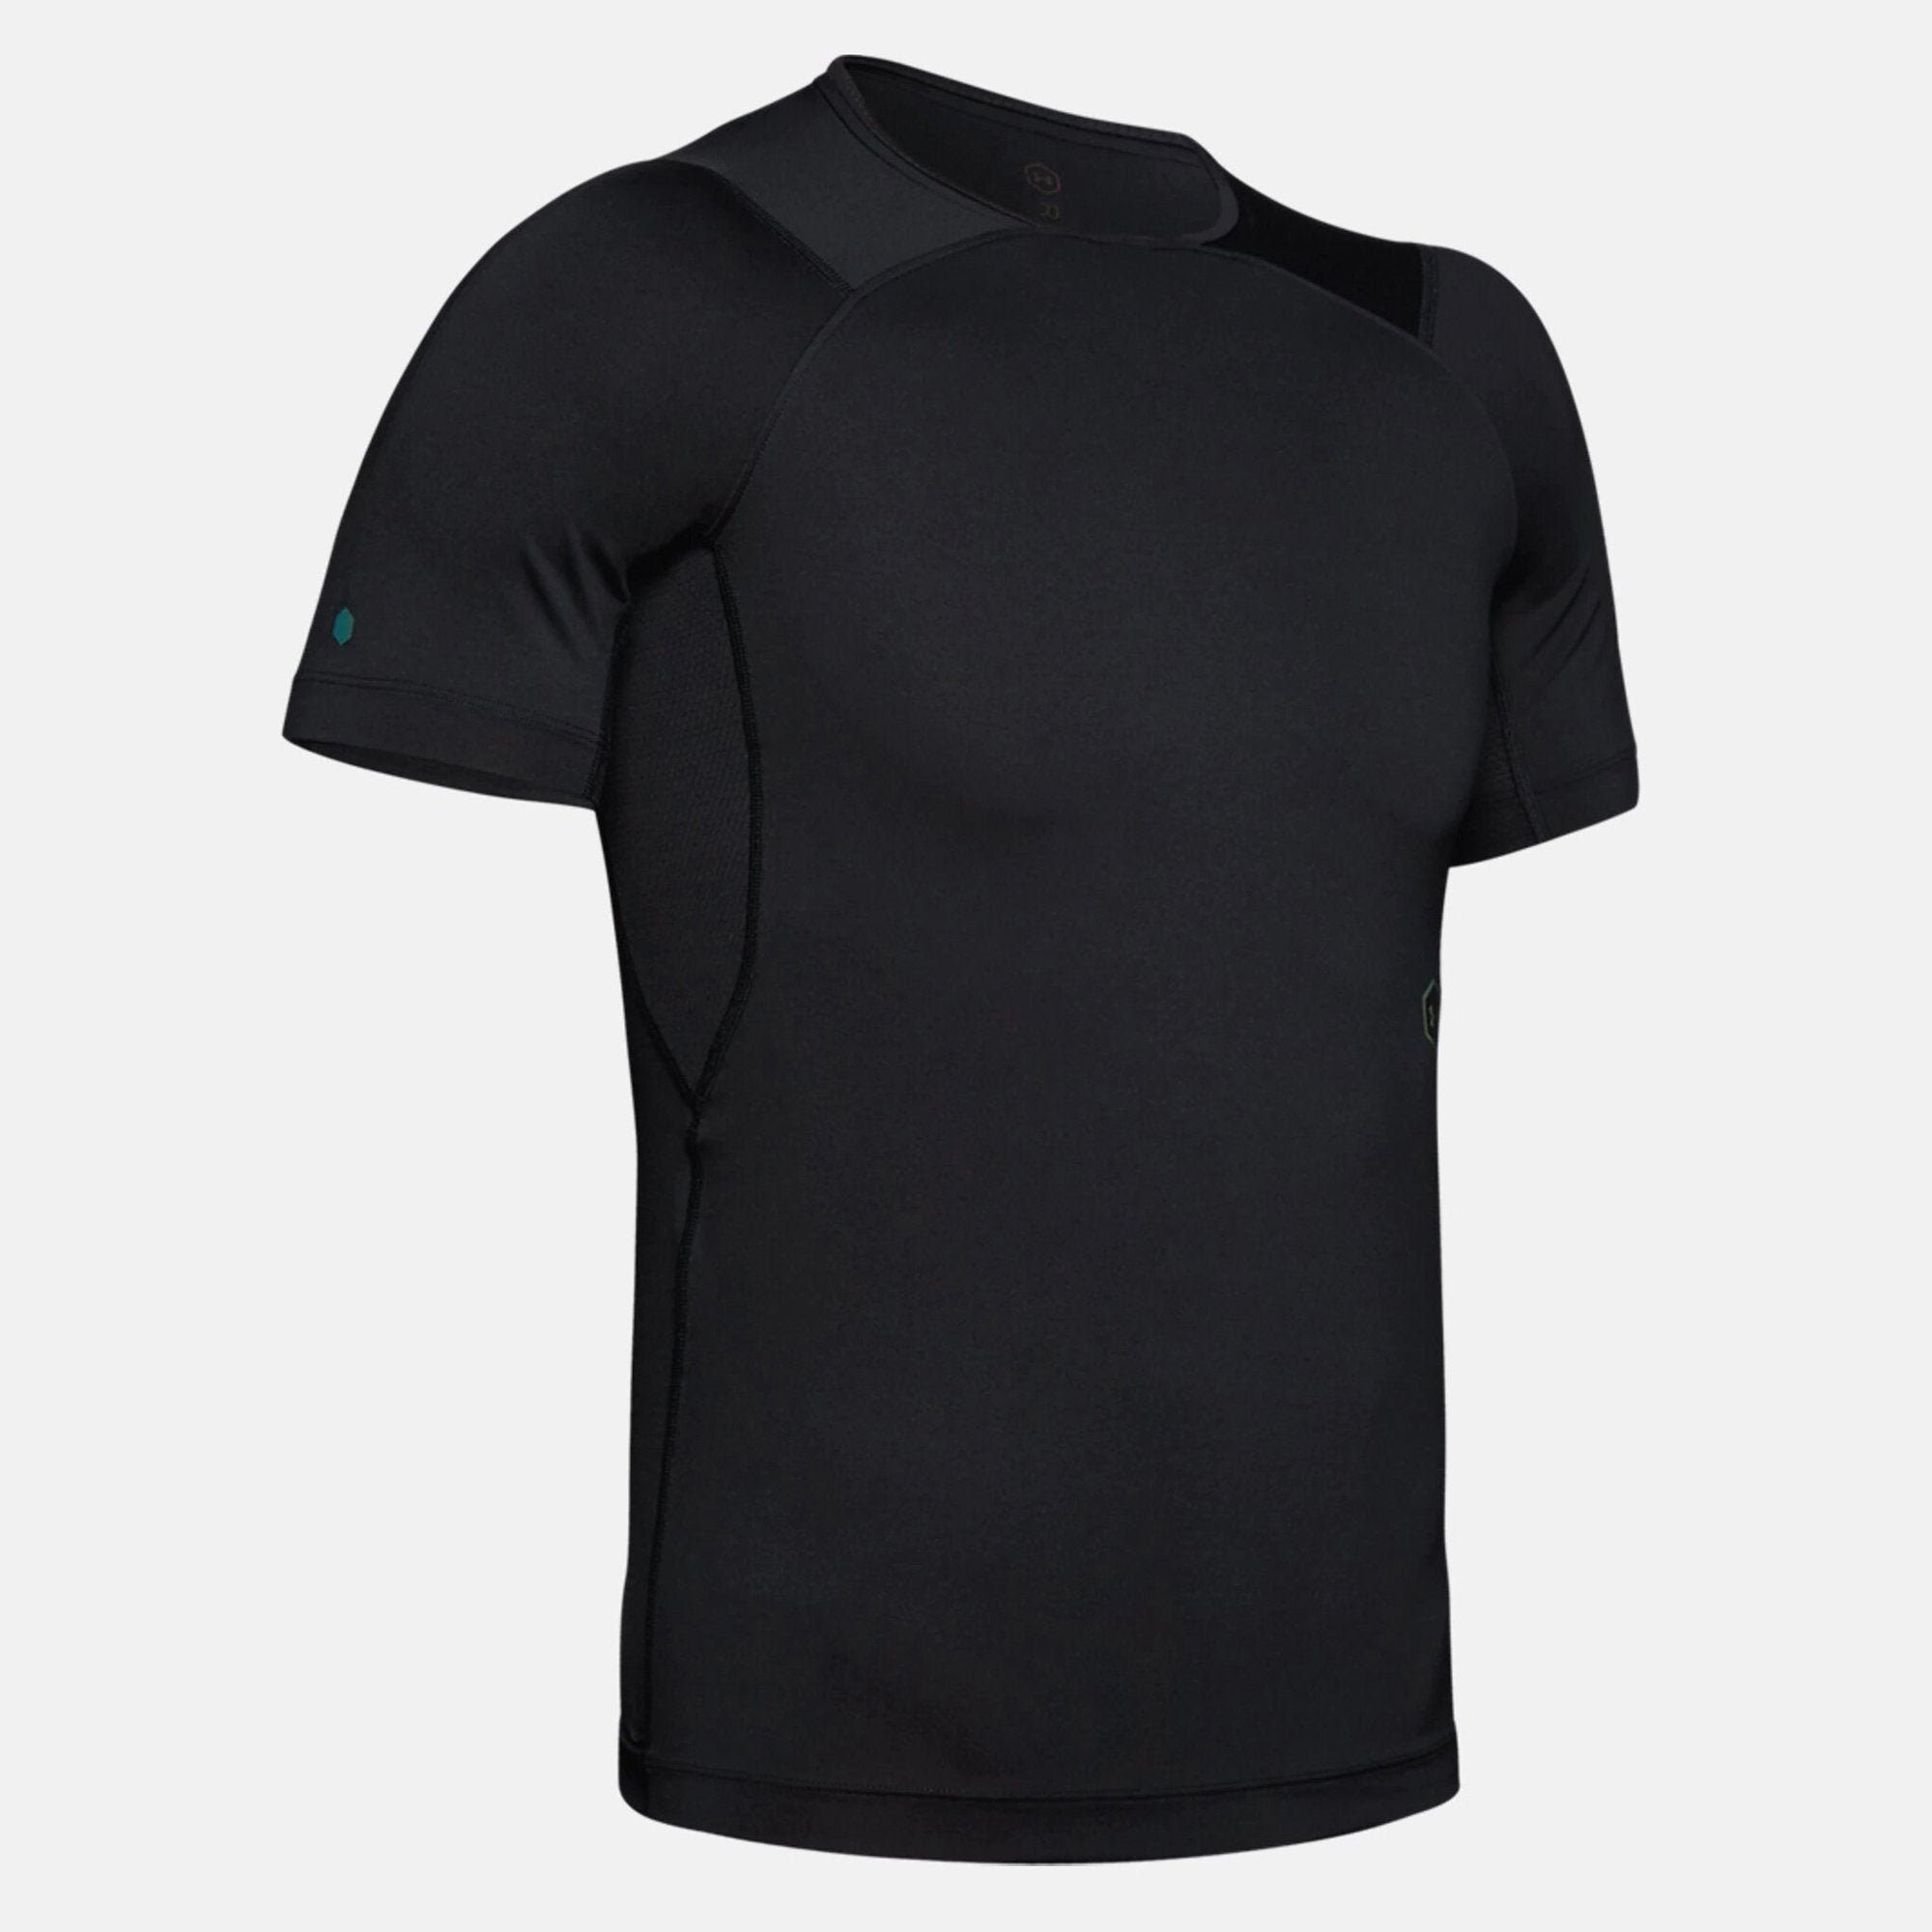 best place to buy under armour online